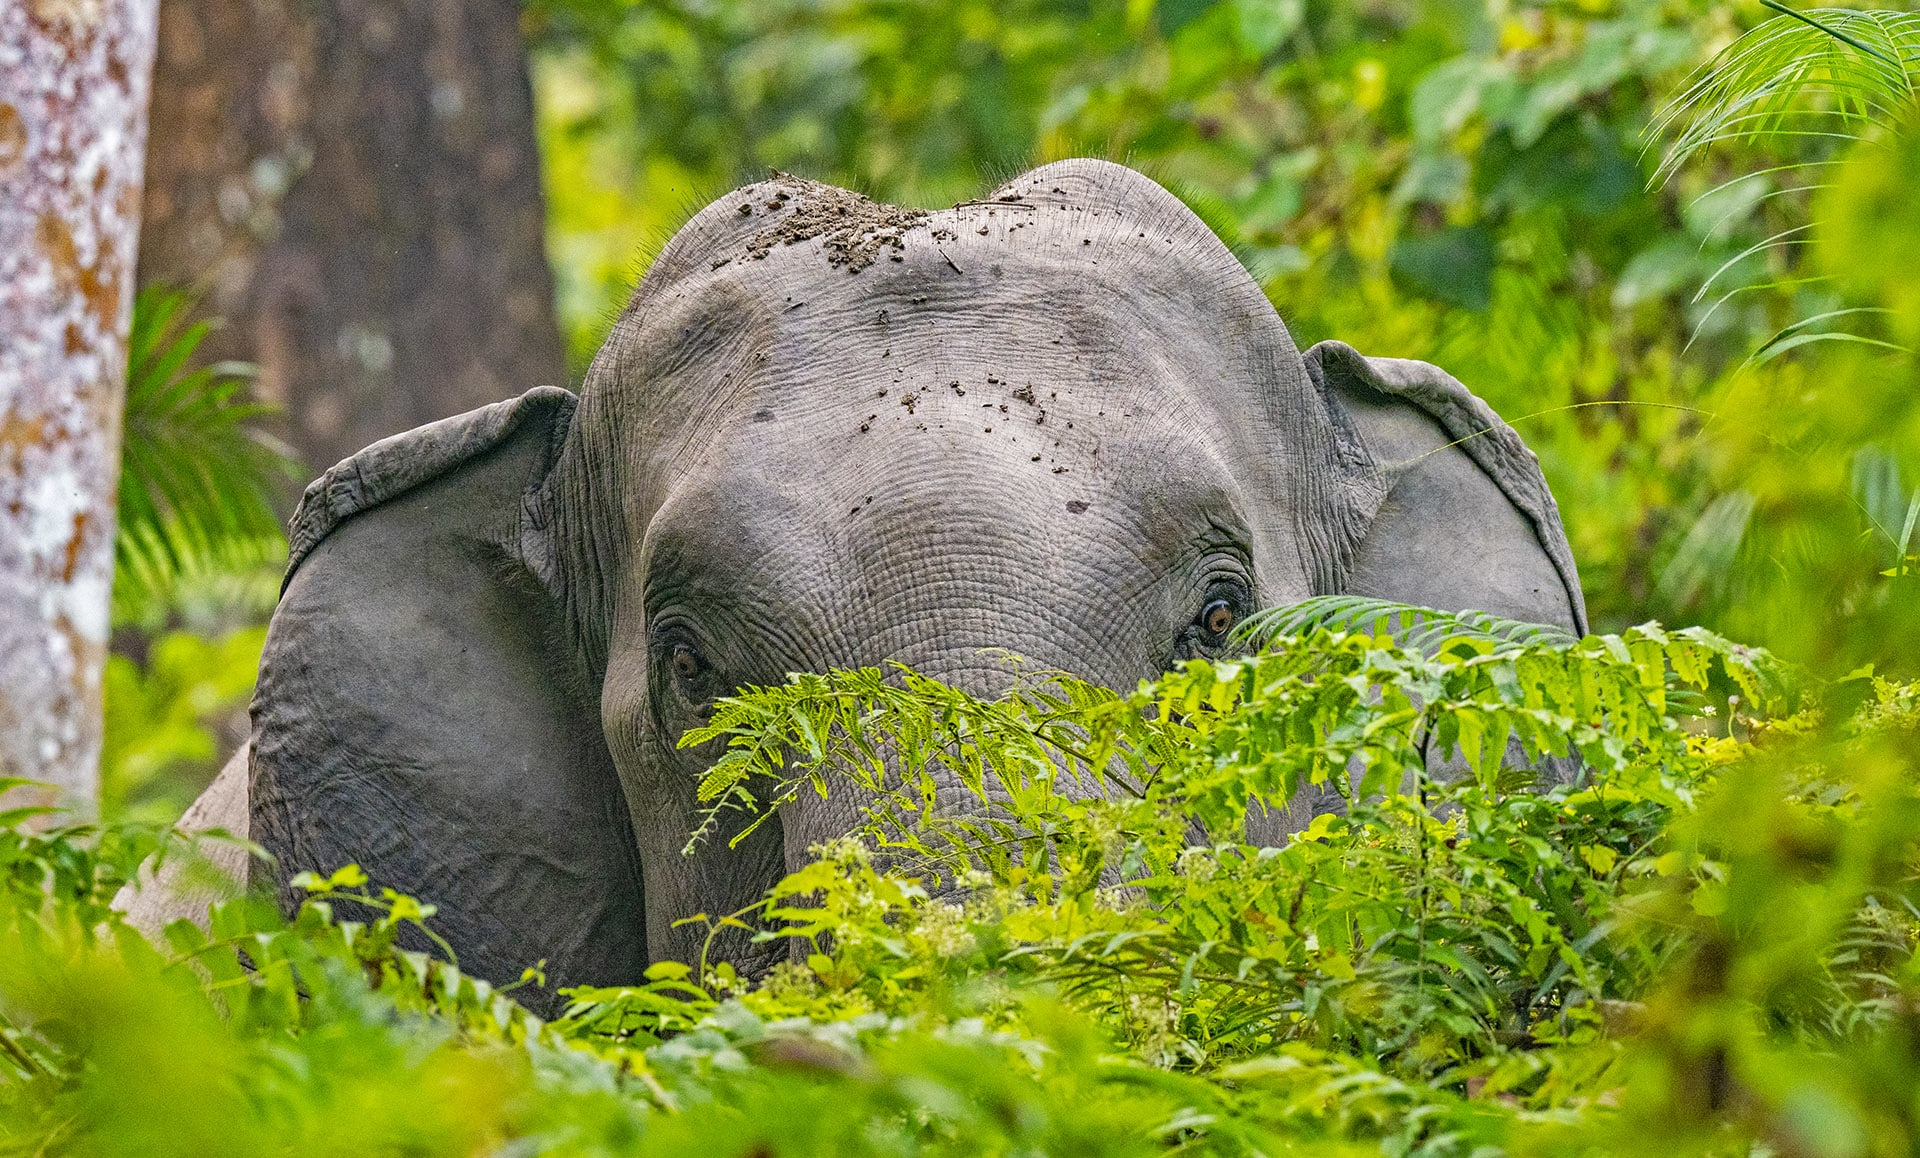 """""""A significant proportion of acoustic communication of both Asian and African elephants occurs through the use of low-frequency"""" sounds according to Vidya and Sukumar. Infrasound, which is undetectable by the human ear, is especially useful in dense forest habitats as it travels through objects such as trees, as opposed to being reflected by them. Many species including whales, crocodiles, and some birds use infrasound to communicate."""